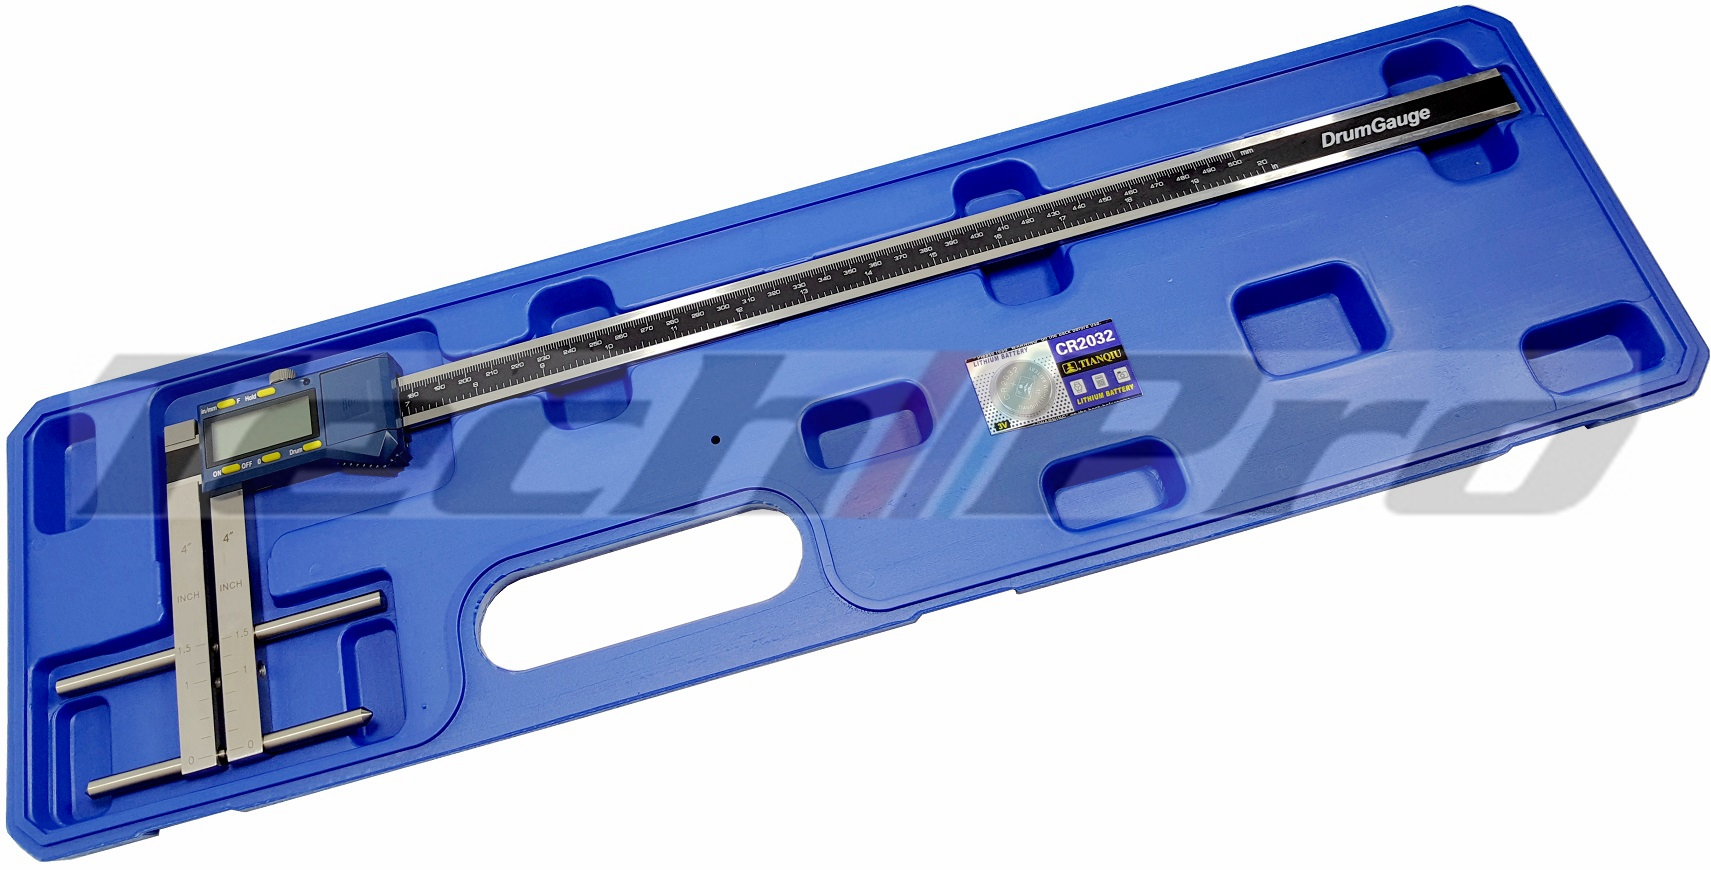 SE-017-3 - Digital Drum Gauge